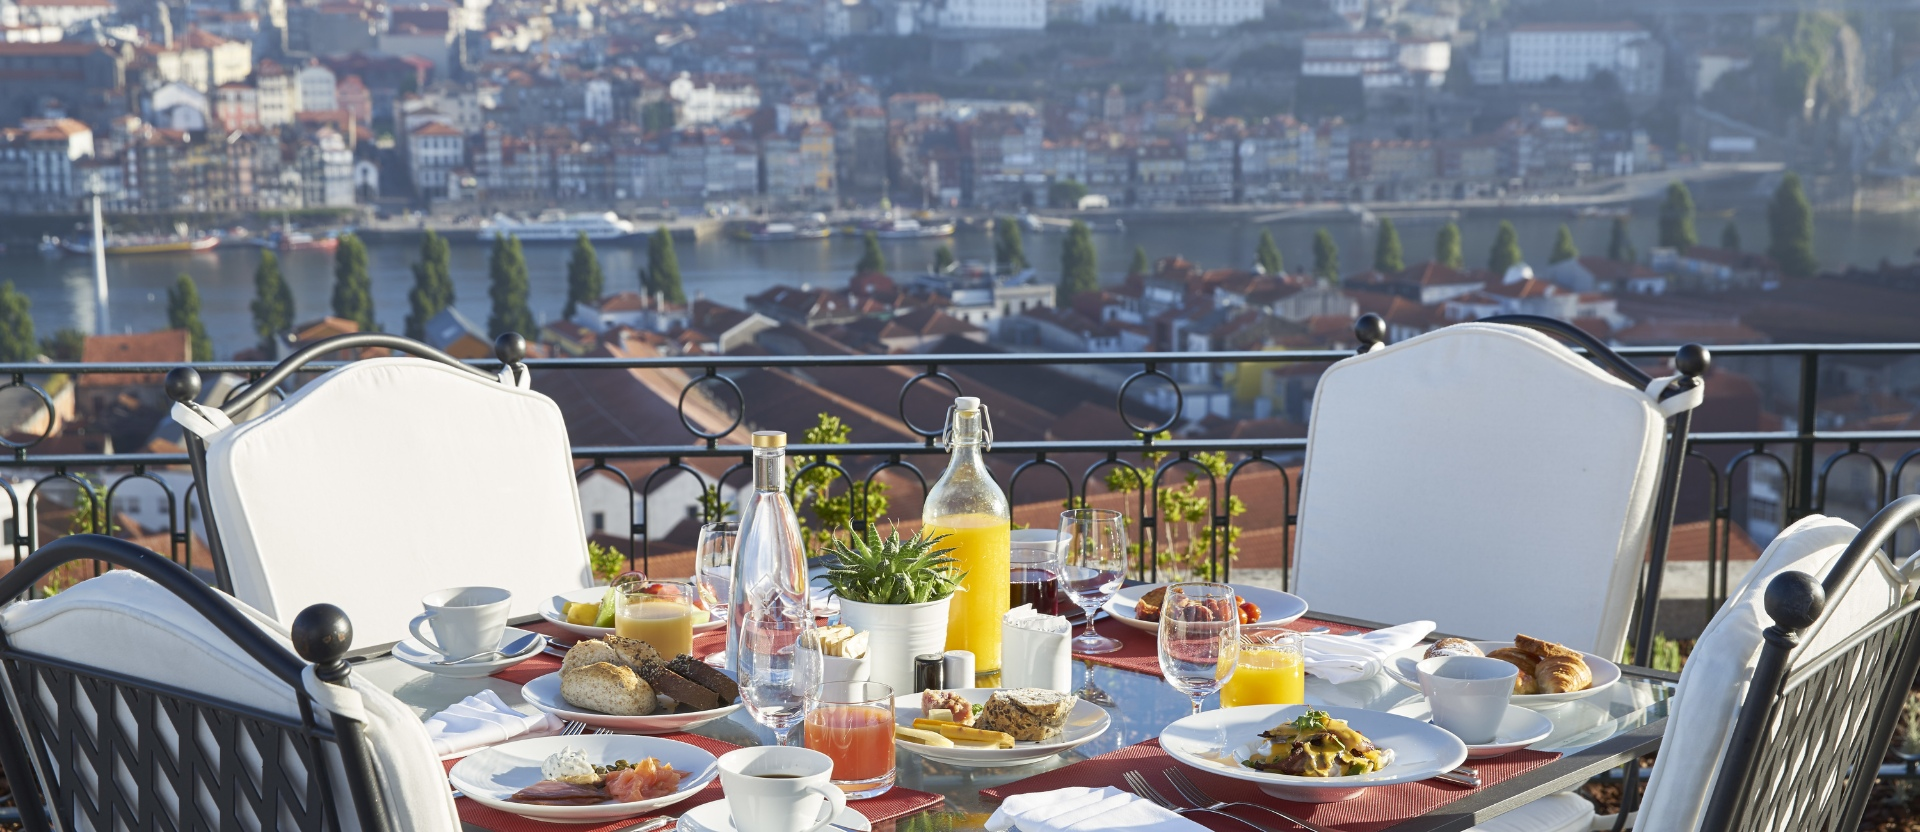 Michelin star restaurants: The Yeatman restaurant what to do in porto What to do in Porto: 48 hours in the Undefeated city image